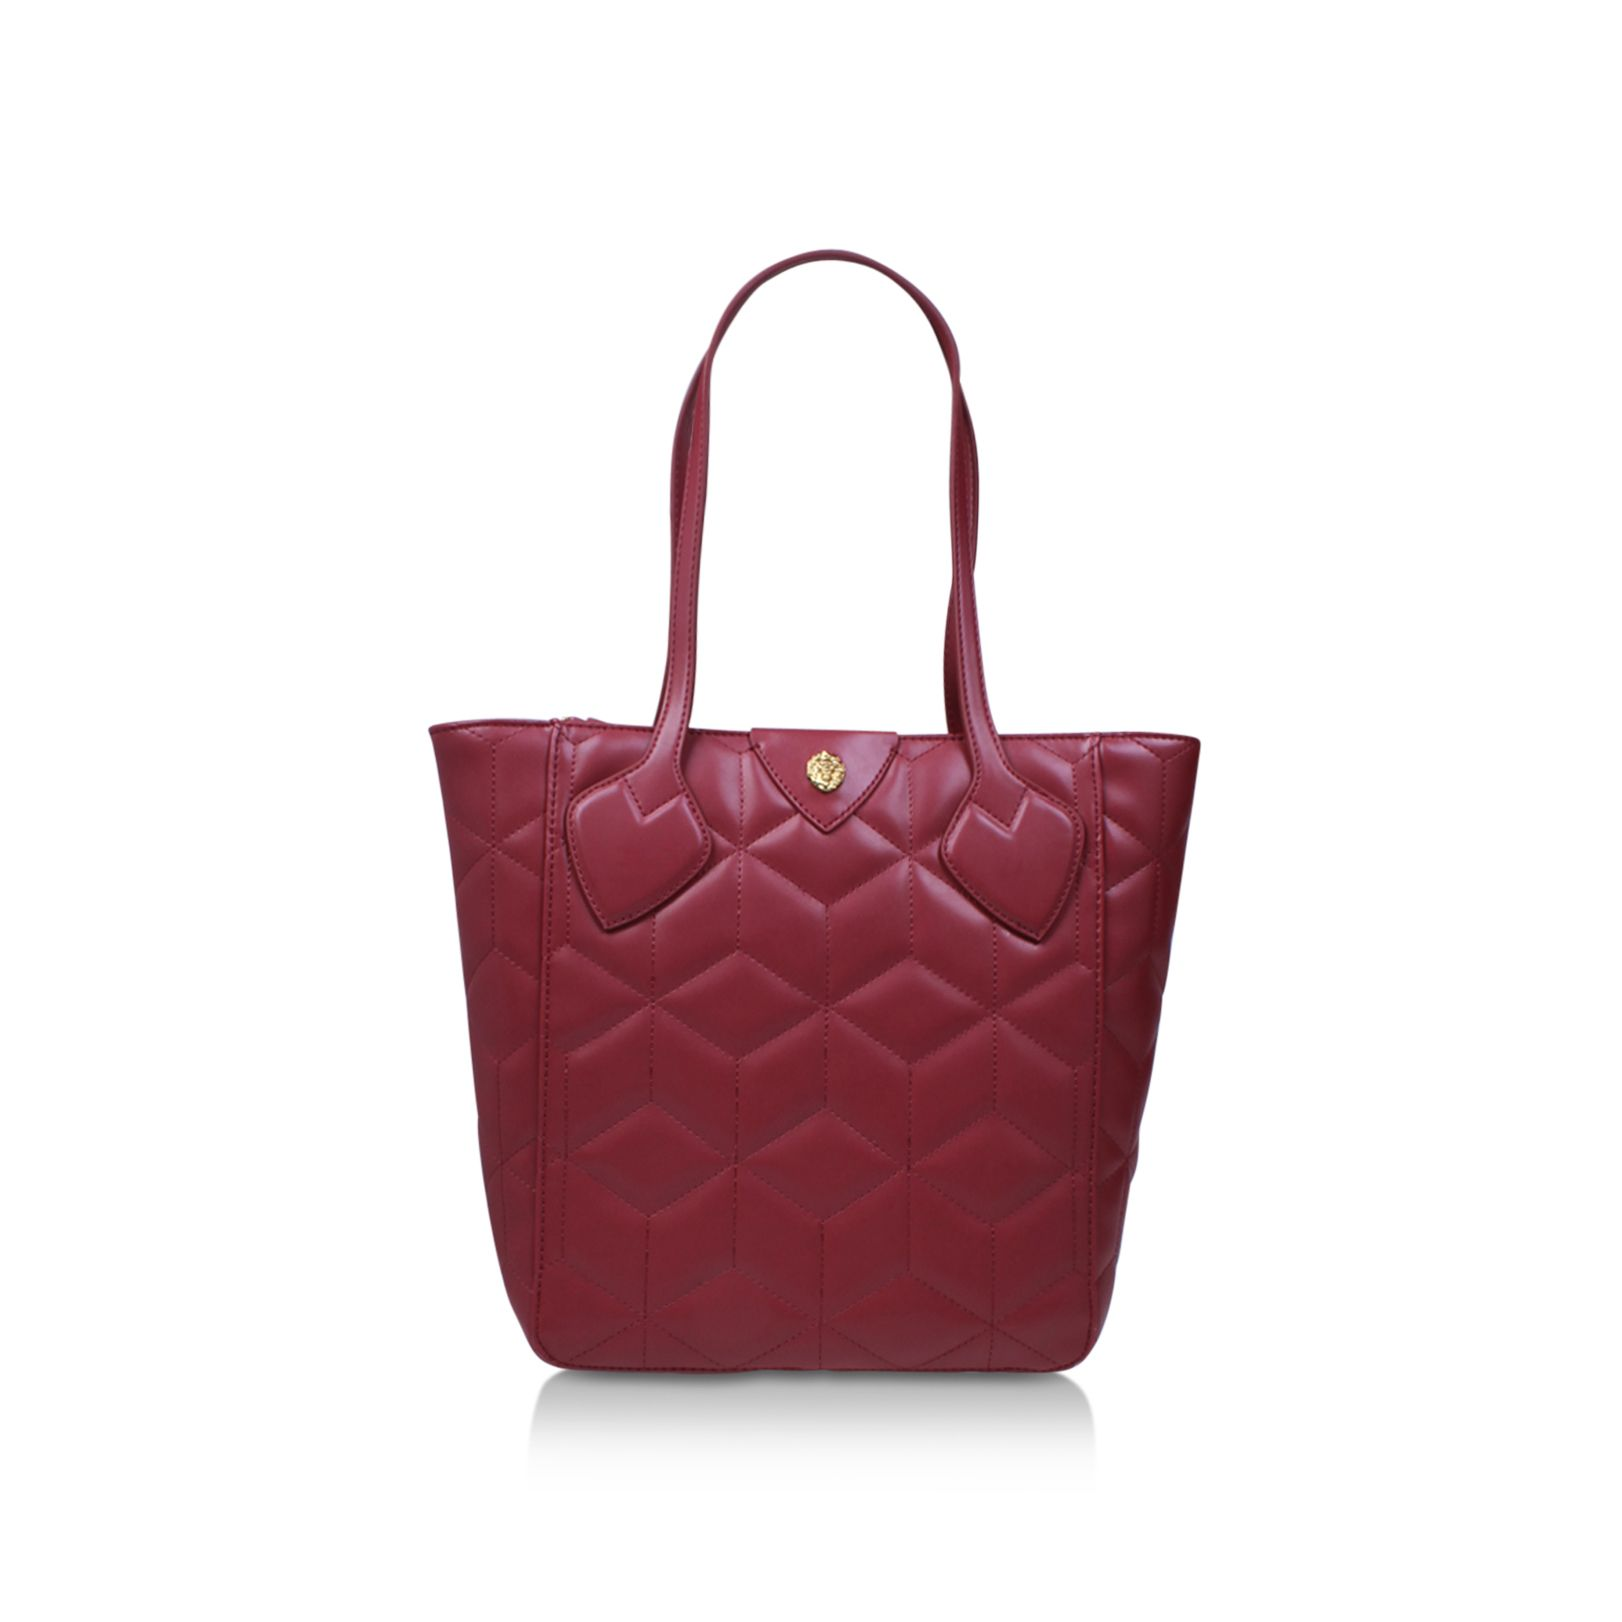 Anne Klein Md Georgia Tote, Wine